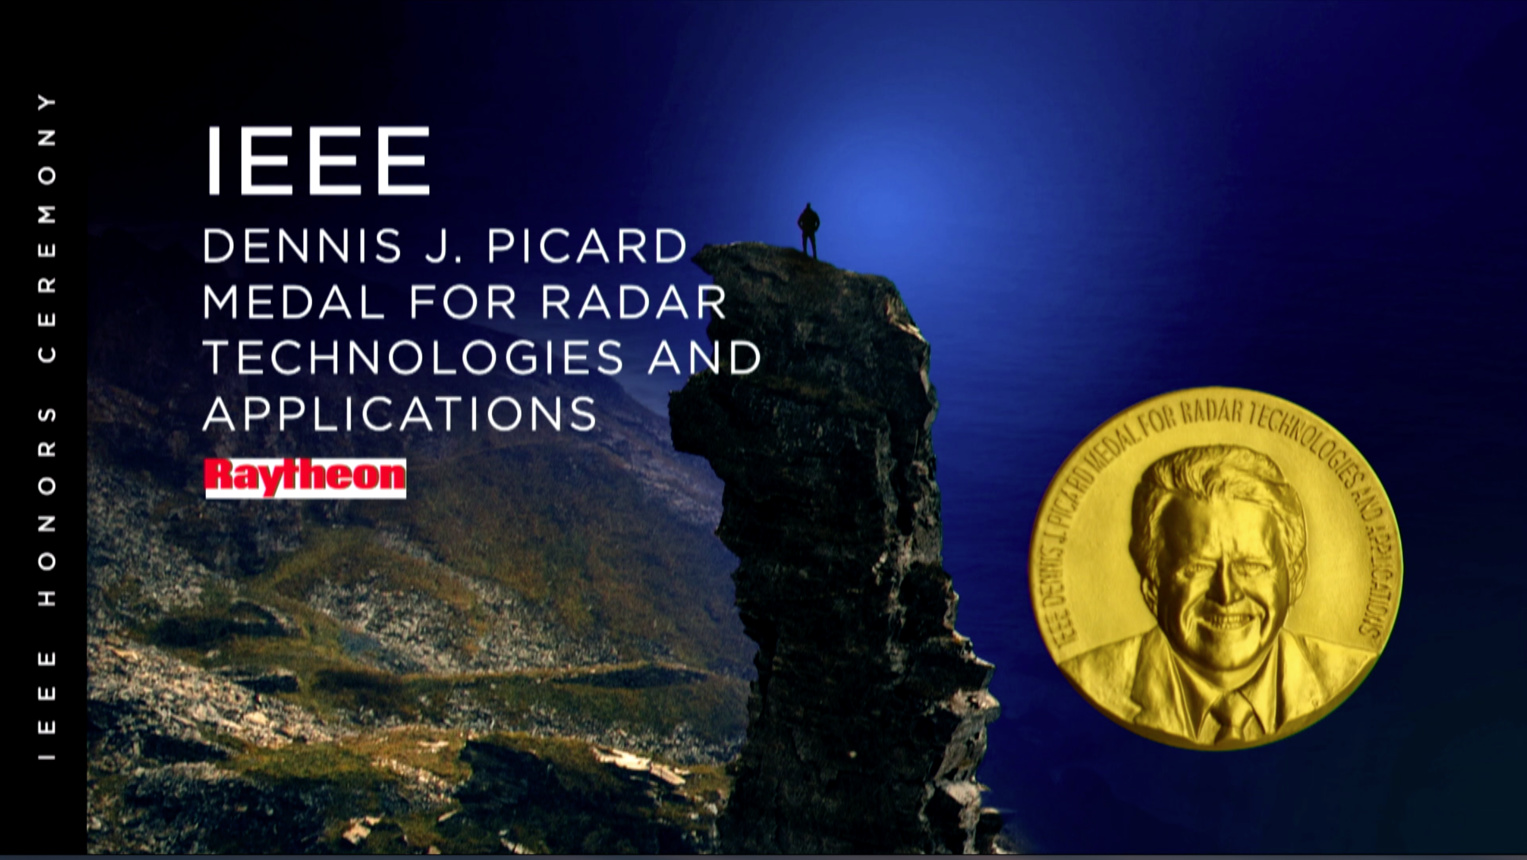 IEEE Dennis J. Picard Medal for Radar Technologies and Applications - Mark E. Davis - 2018 IEEE Honors Ceremony